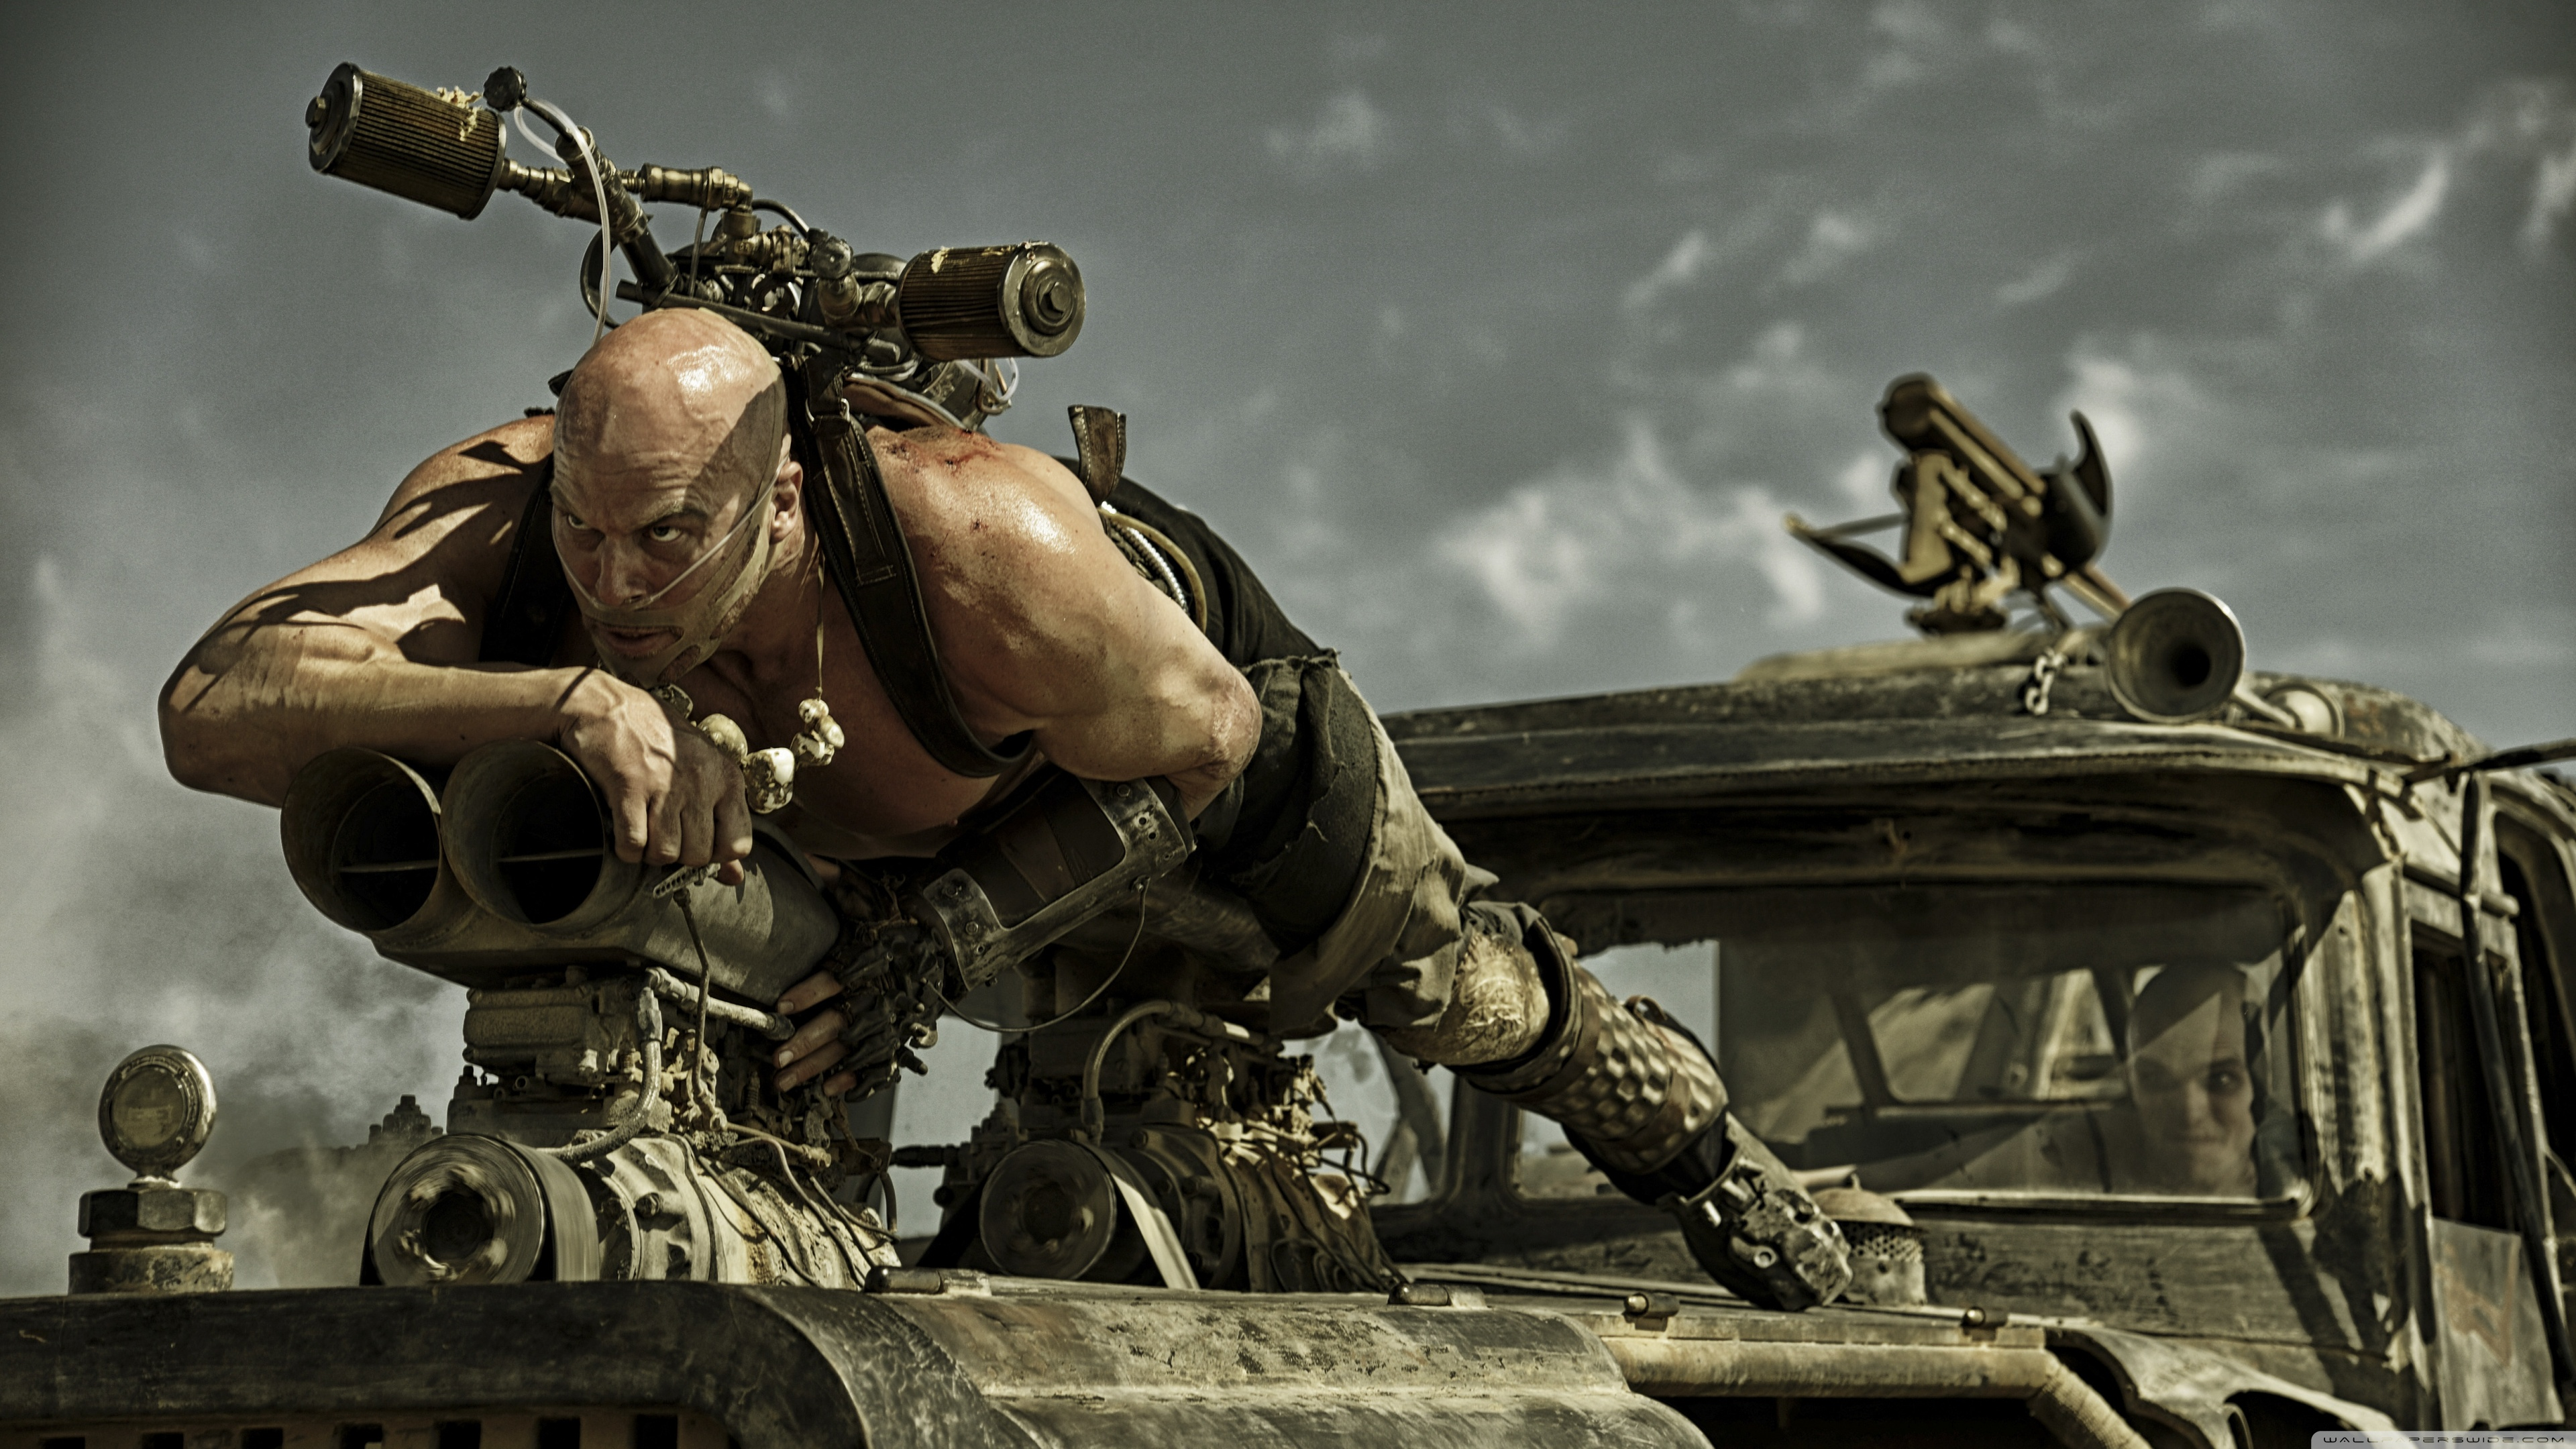 mad max fury road 4k ultra hd wallpaper background image